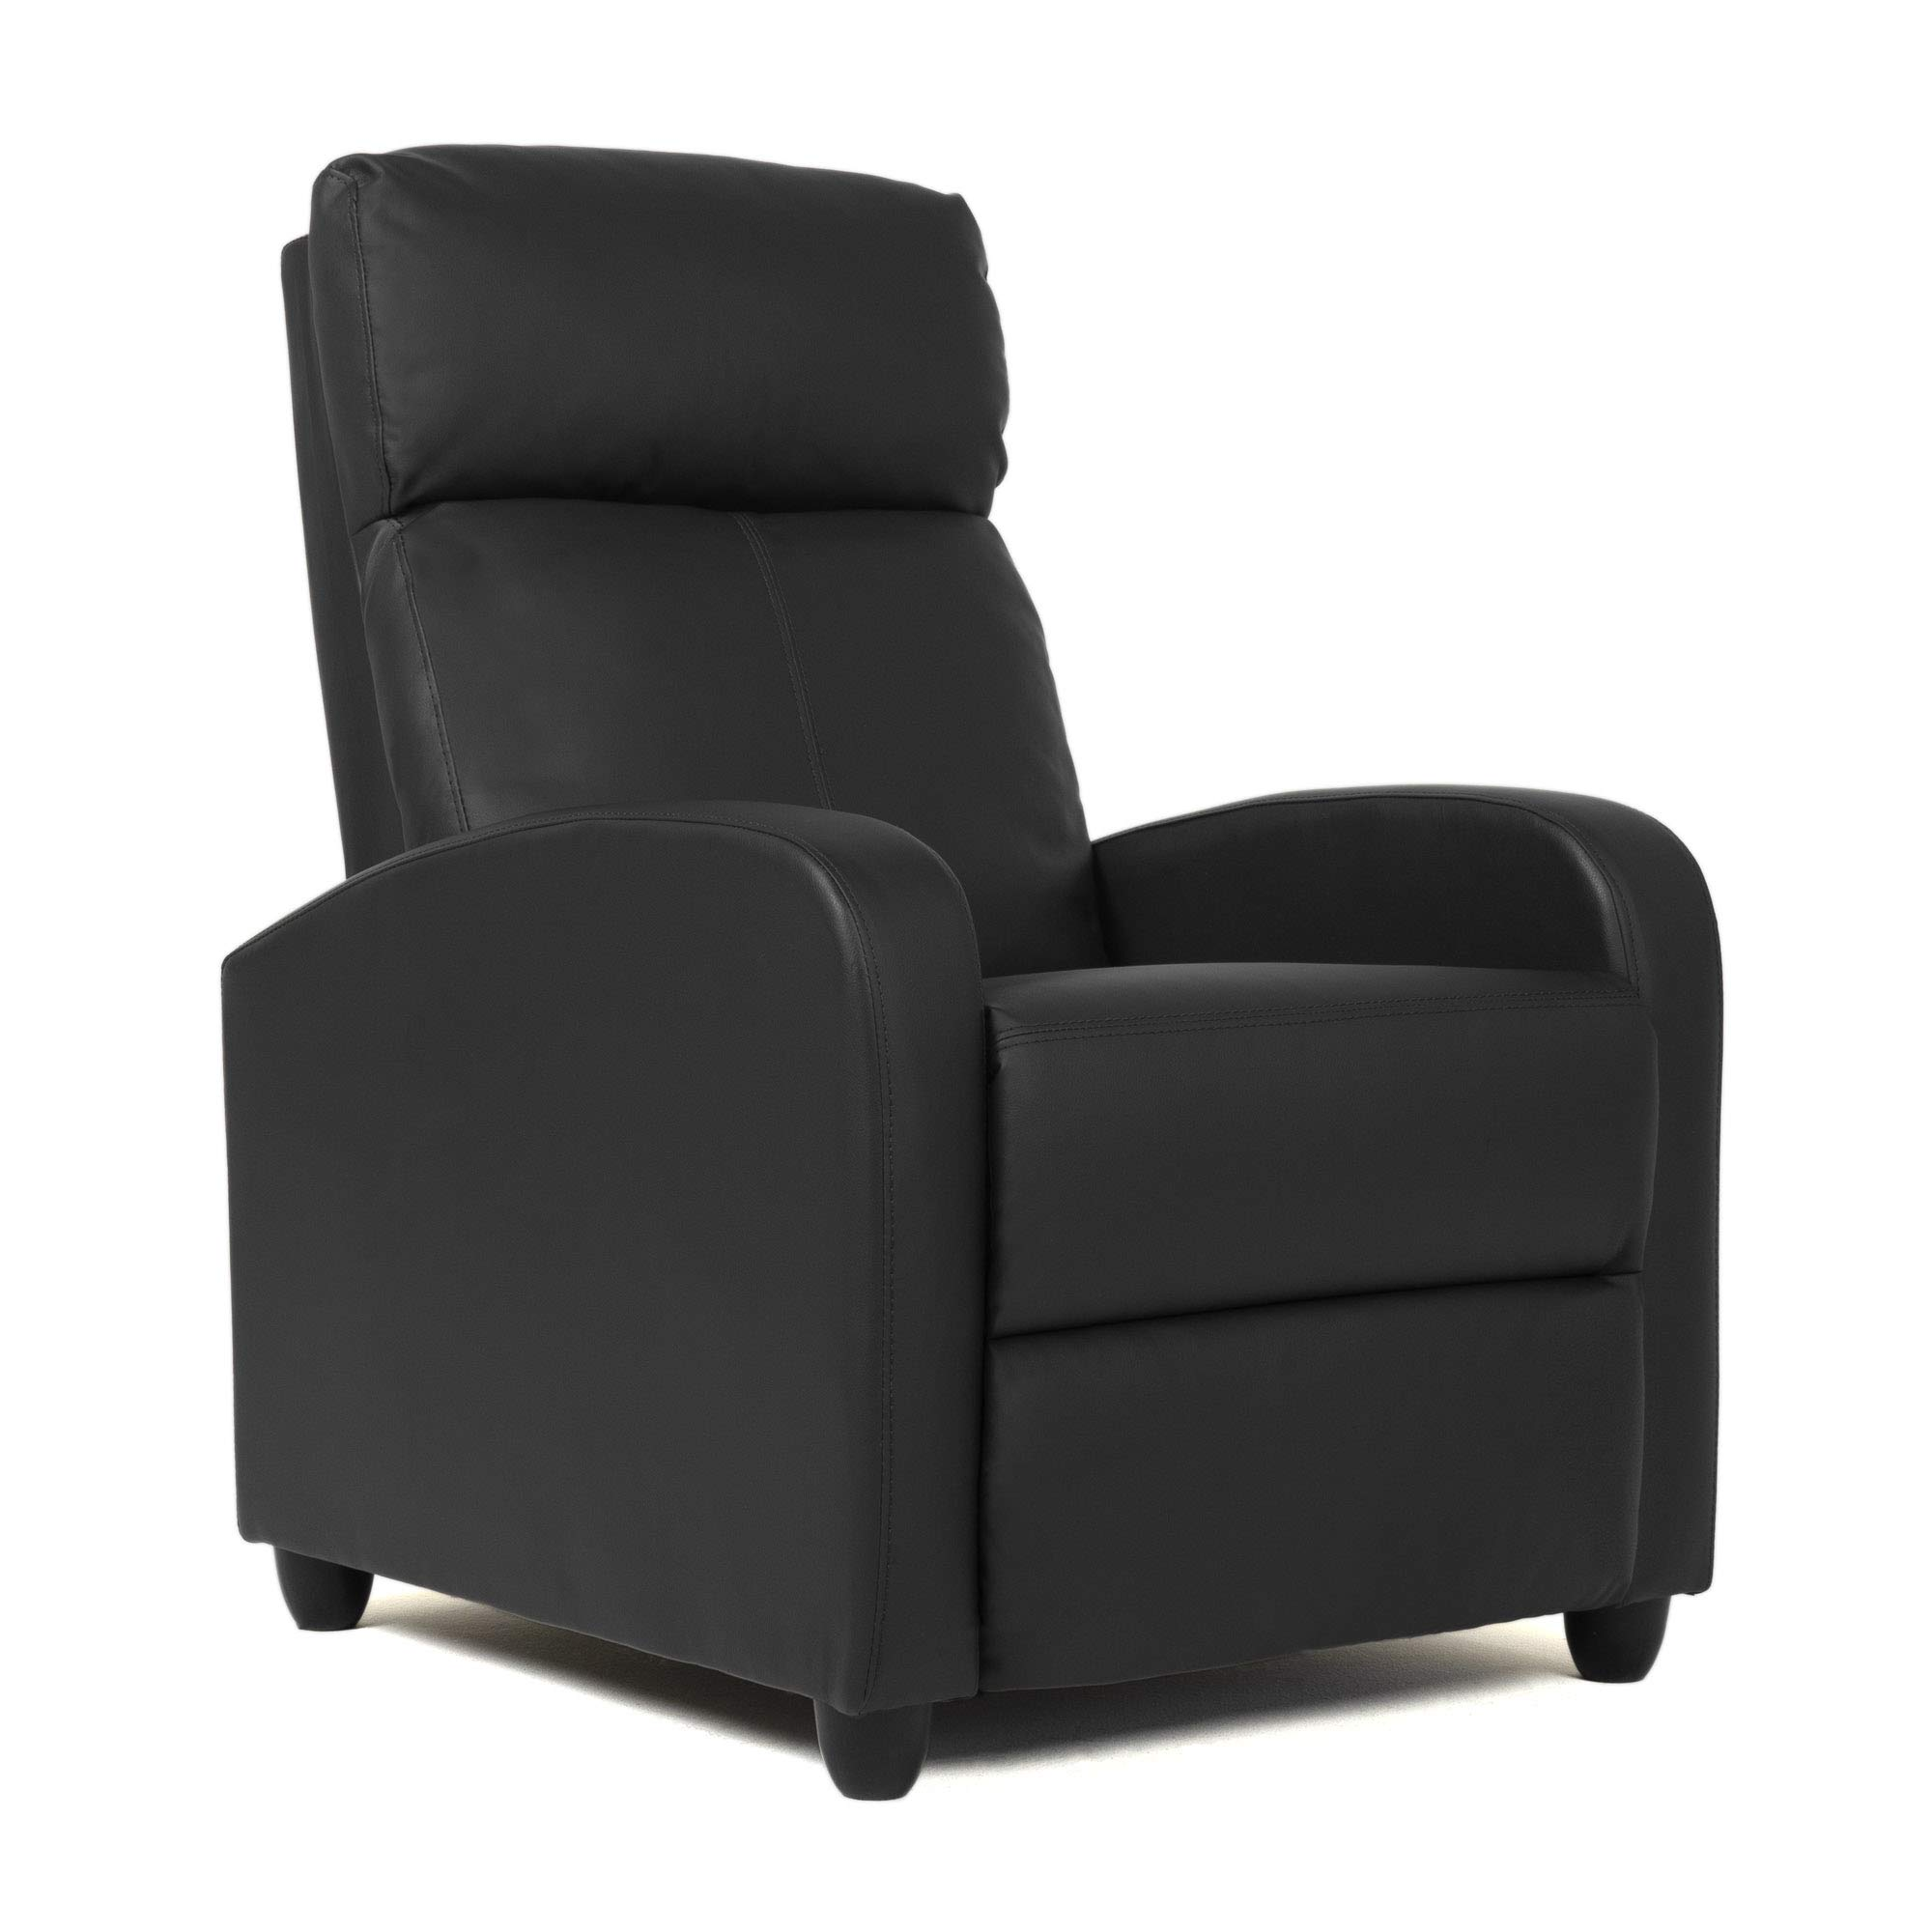 Wingback Recliner Chair Leather Single M- Buy Online in United